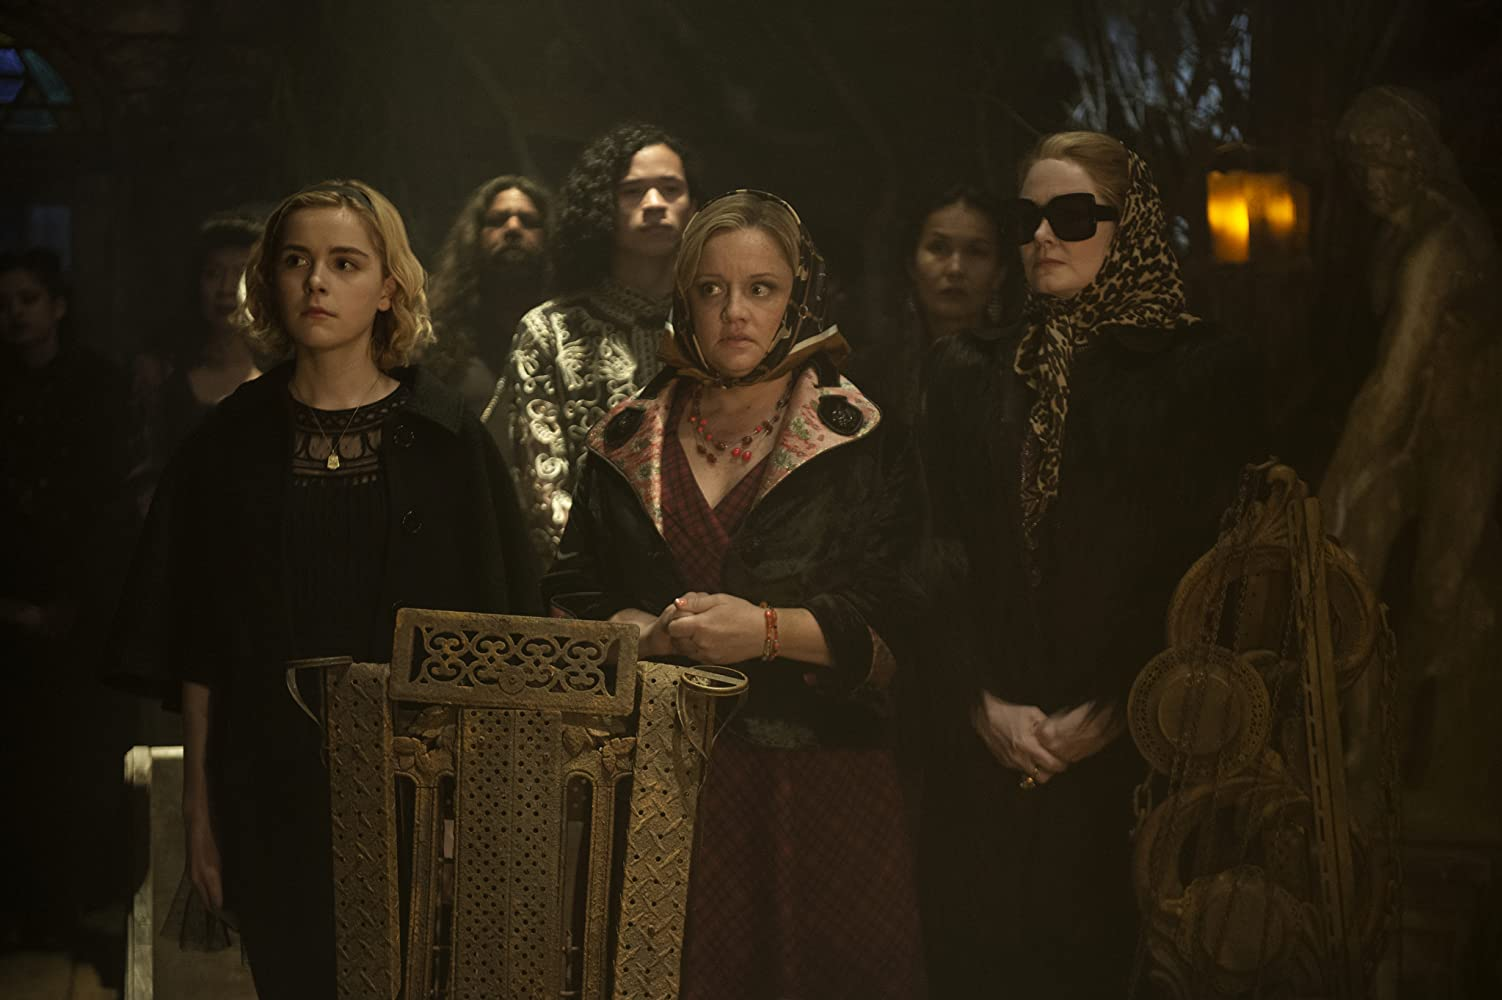 Miranda Otto, Lucy Davis, and Kiernan Shipka in Chilling Adventures of Sabrina (2018)